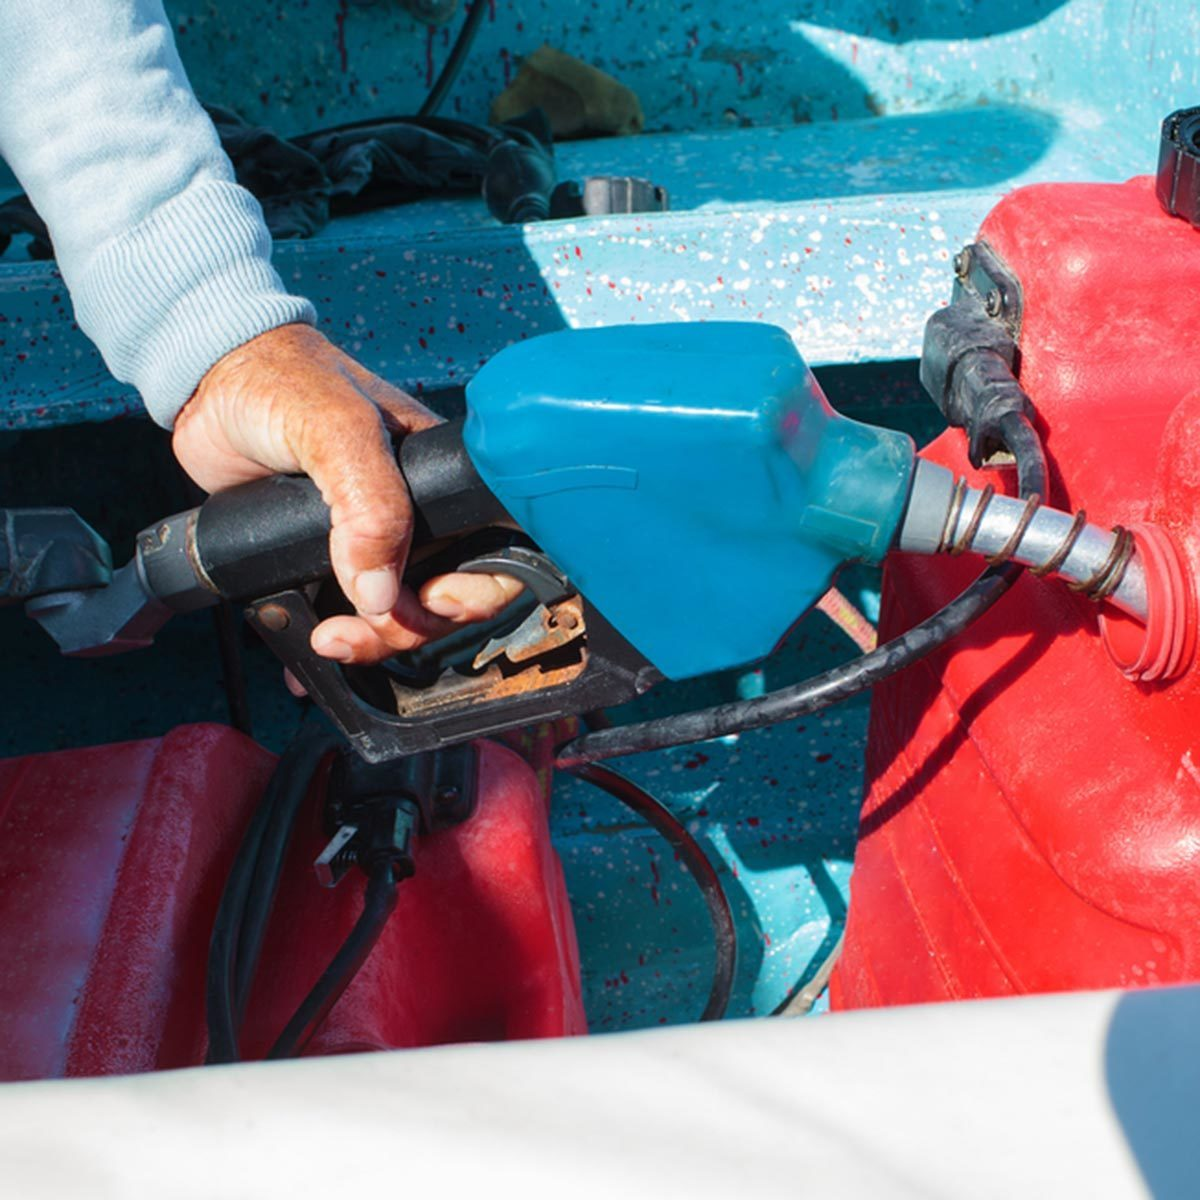 7. Carefully Manage Fuel and Use Fuel Stabilizers When Necessary